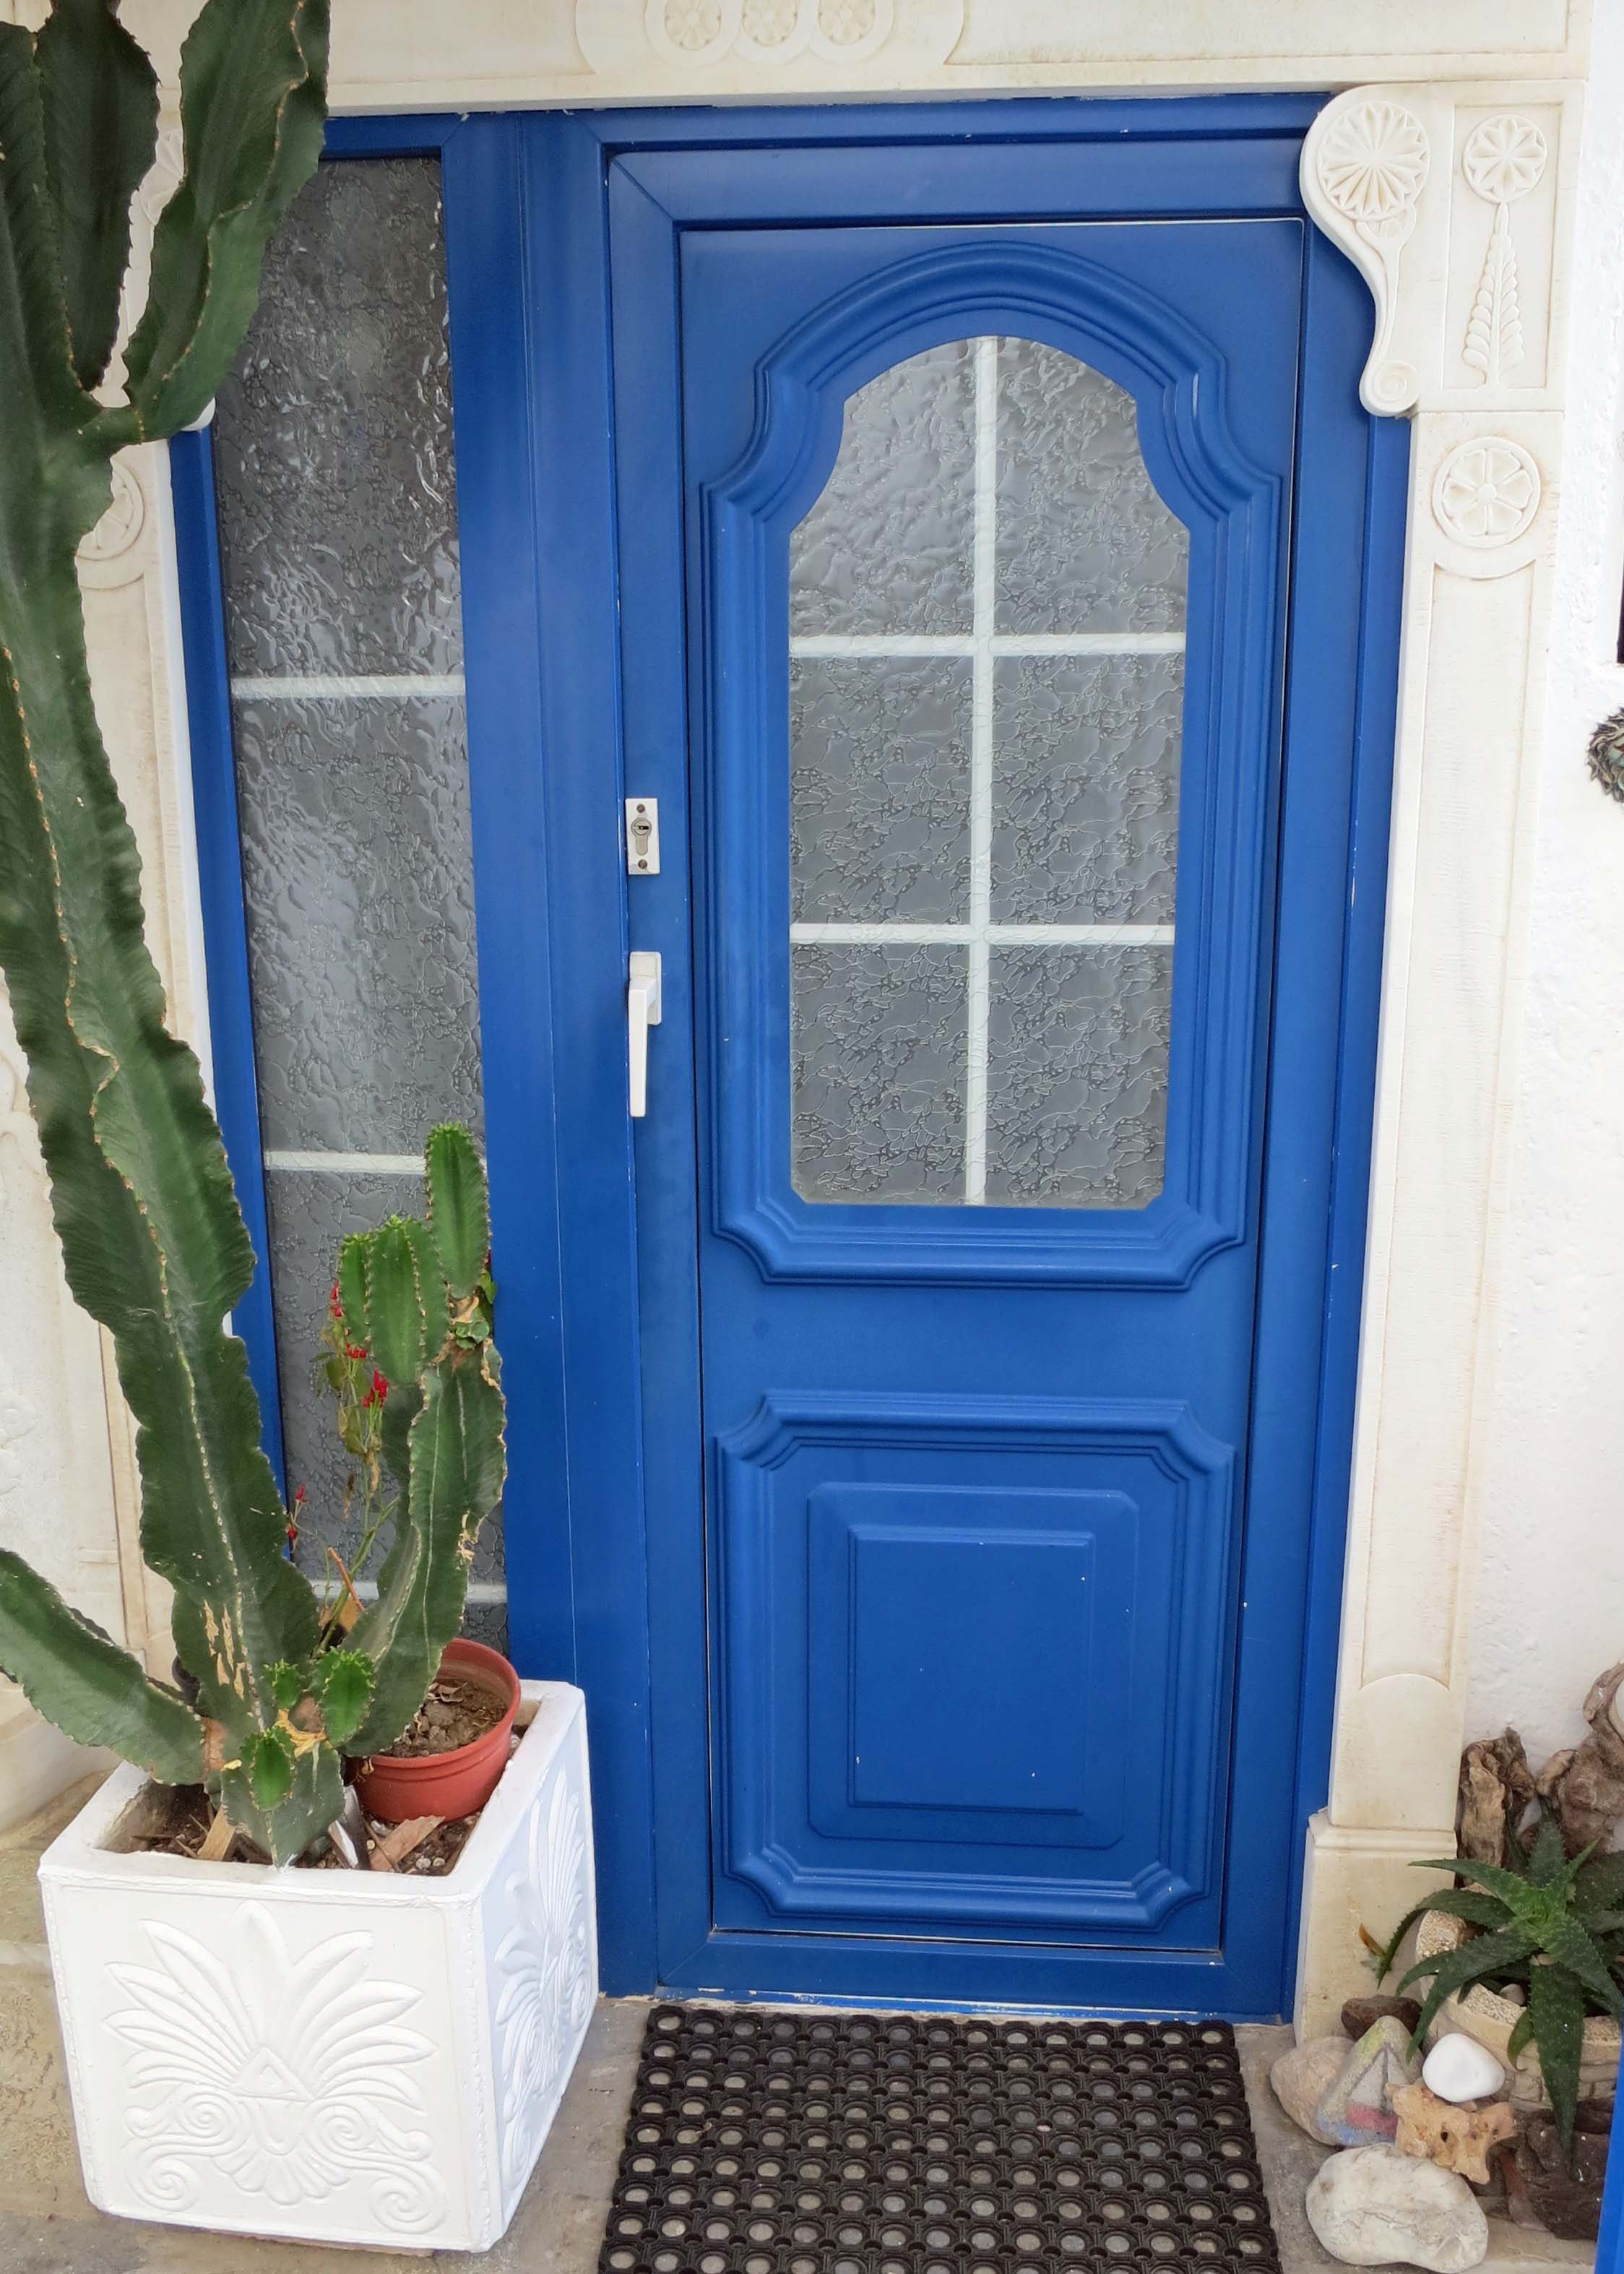 This blue Mykonos door is decorated by a cactus.